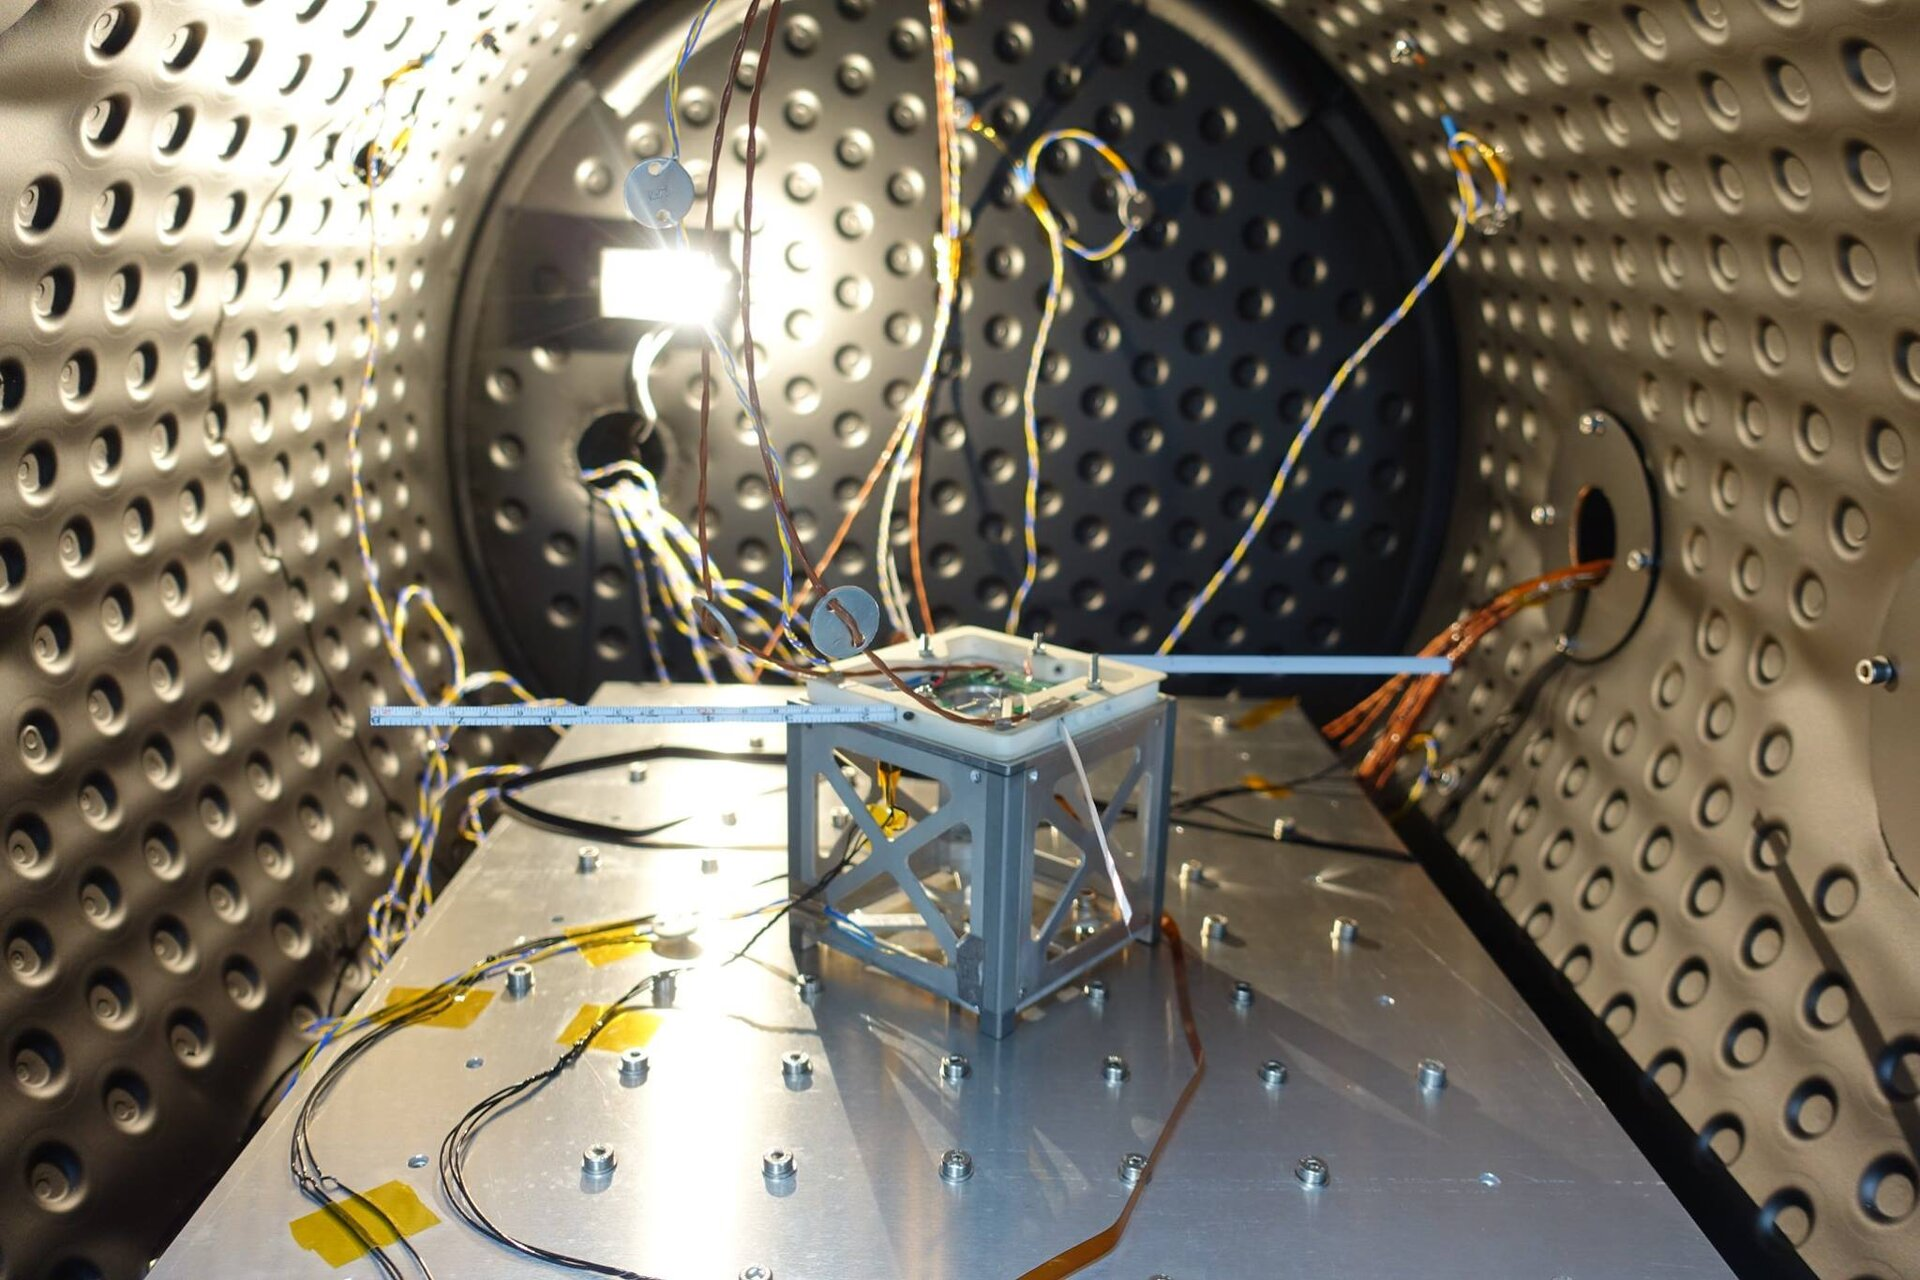 The UoS3 antennas deployed successfully after thermal vacuum testing